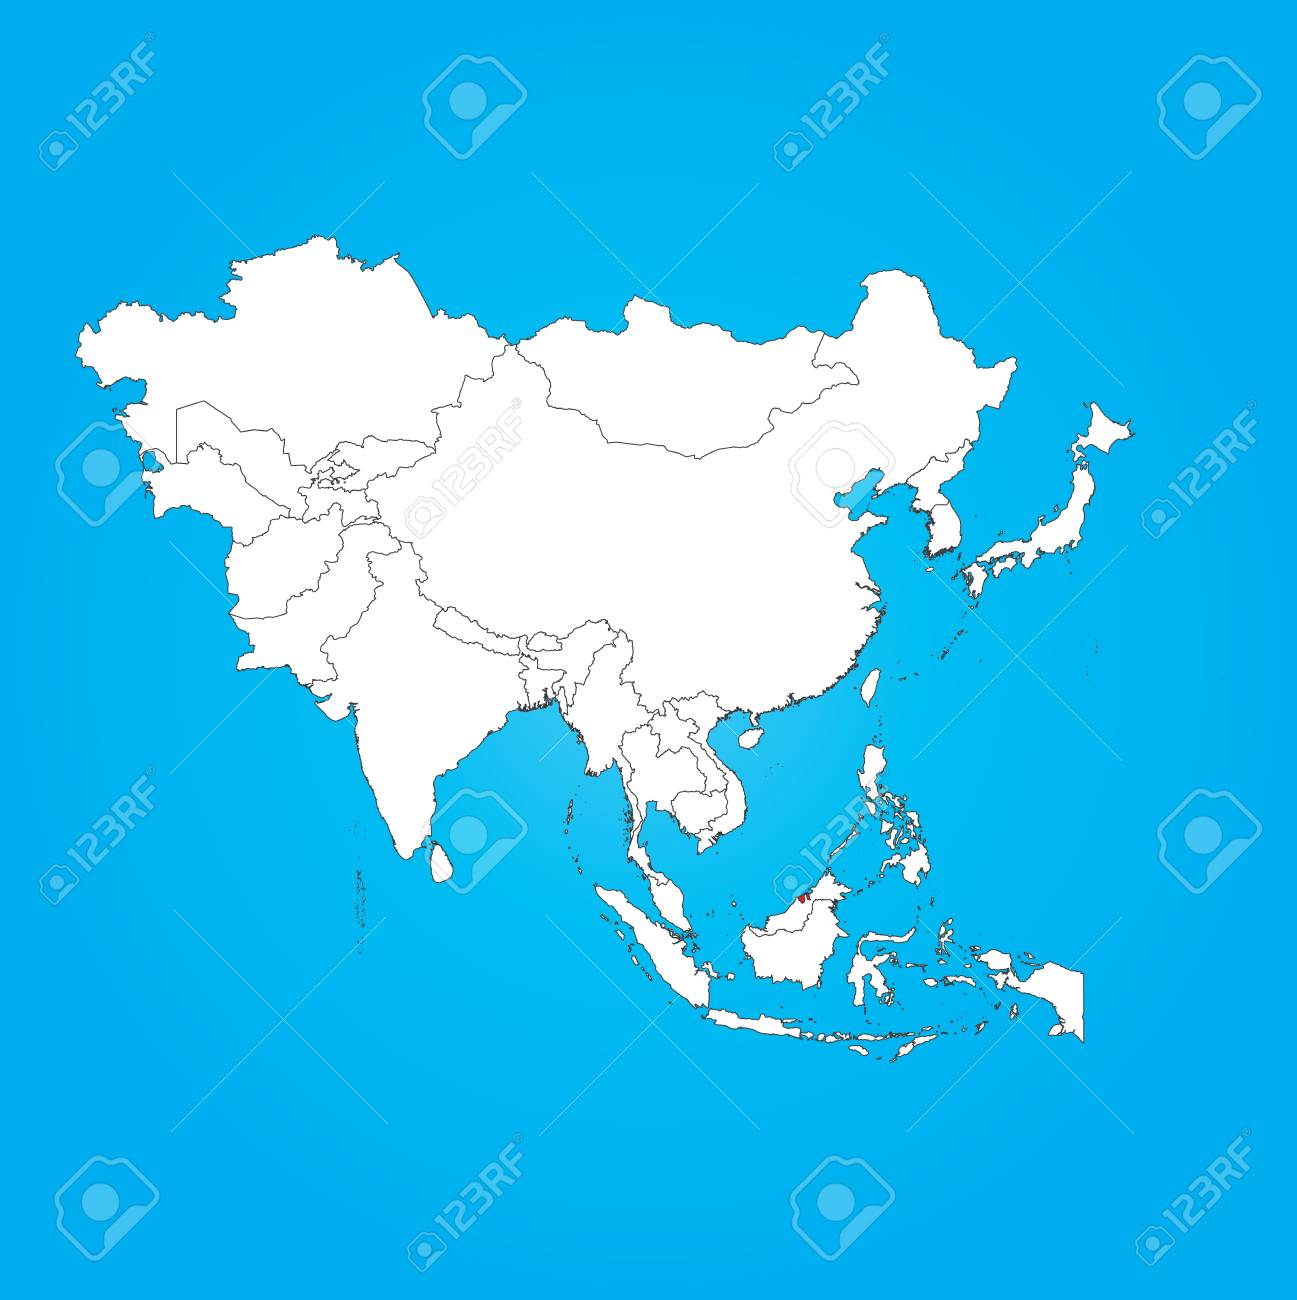 Map Of Asia Brunei.A Map Of Asia With A Selected Country Of Brunei Royalty Free